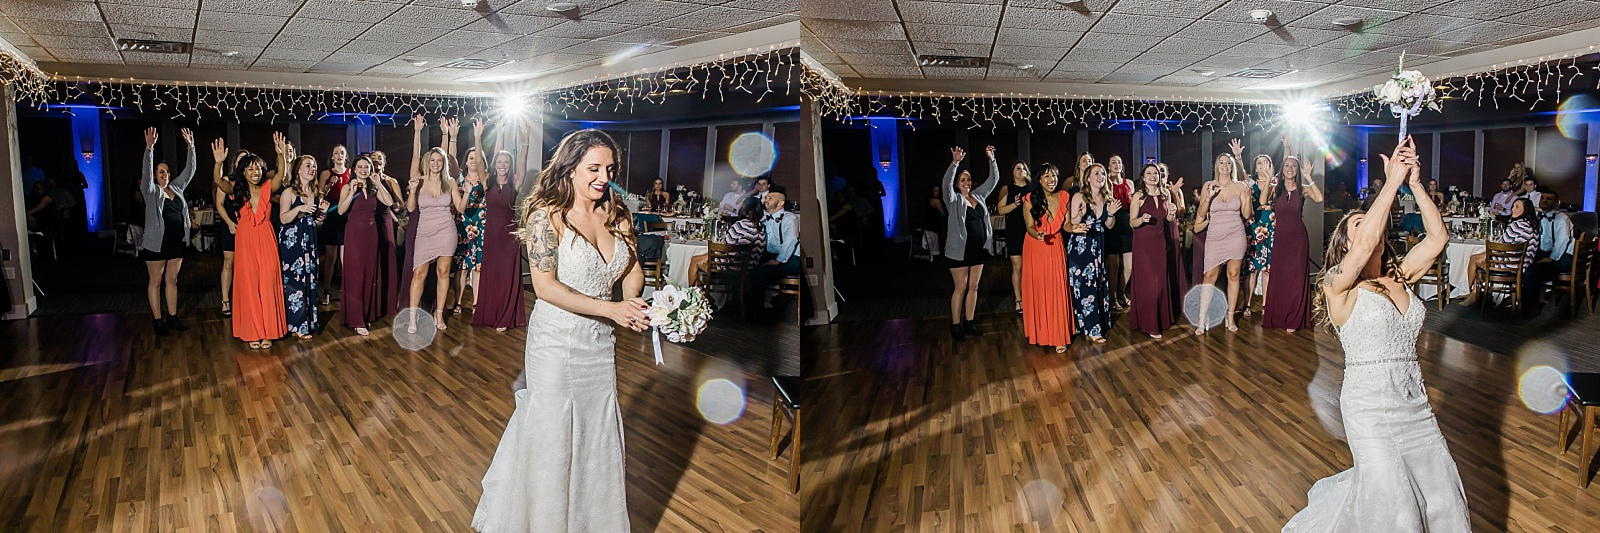 south bend wedding photographer the woodward room_0088.jpg